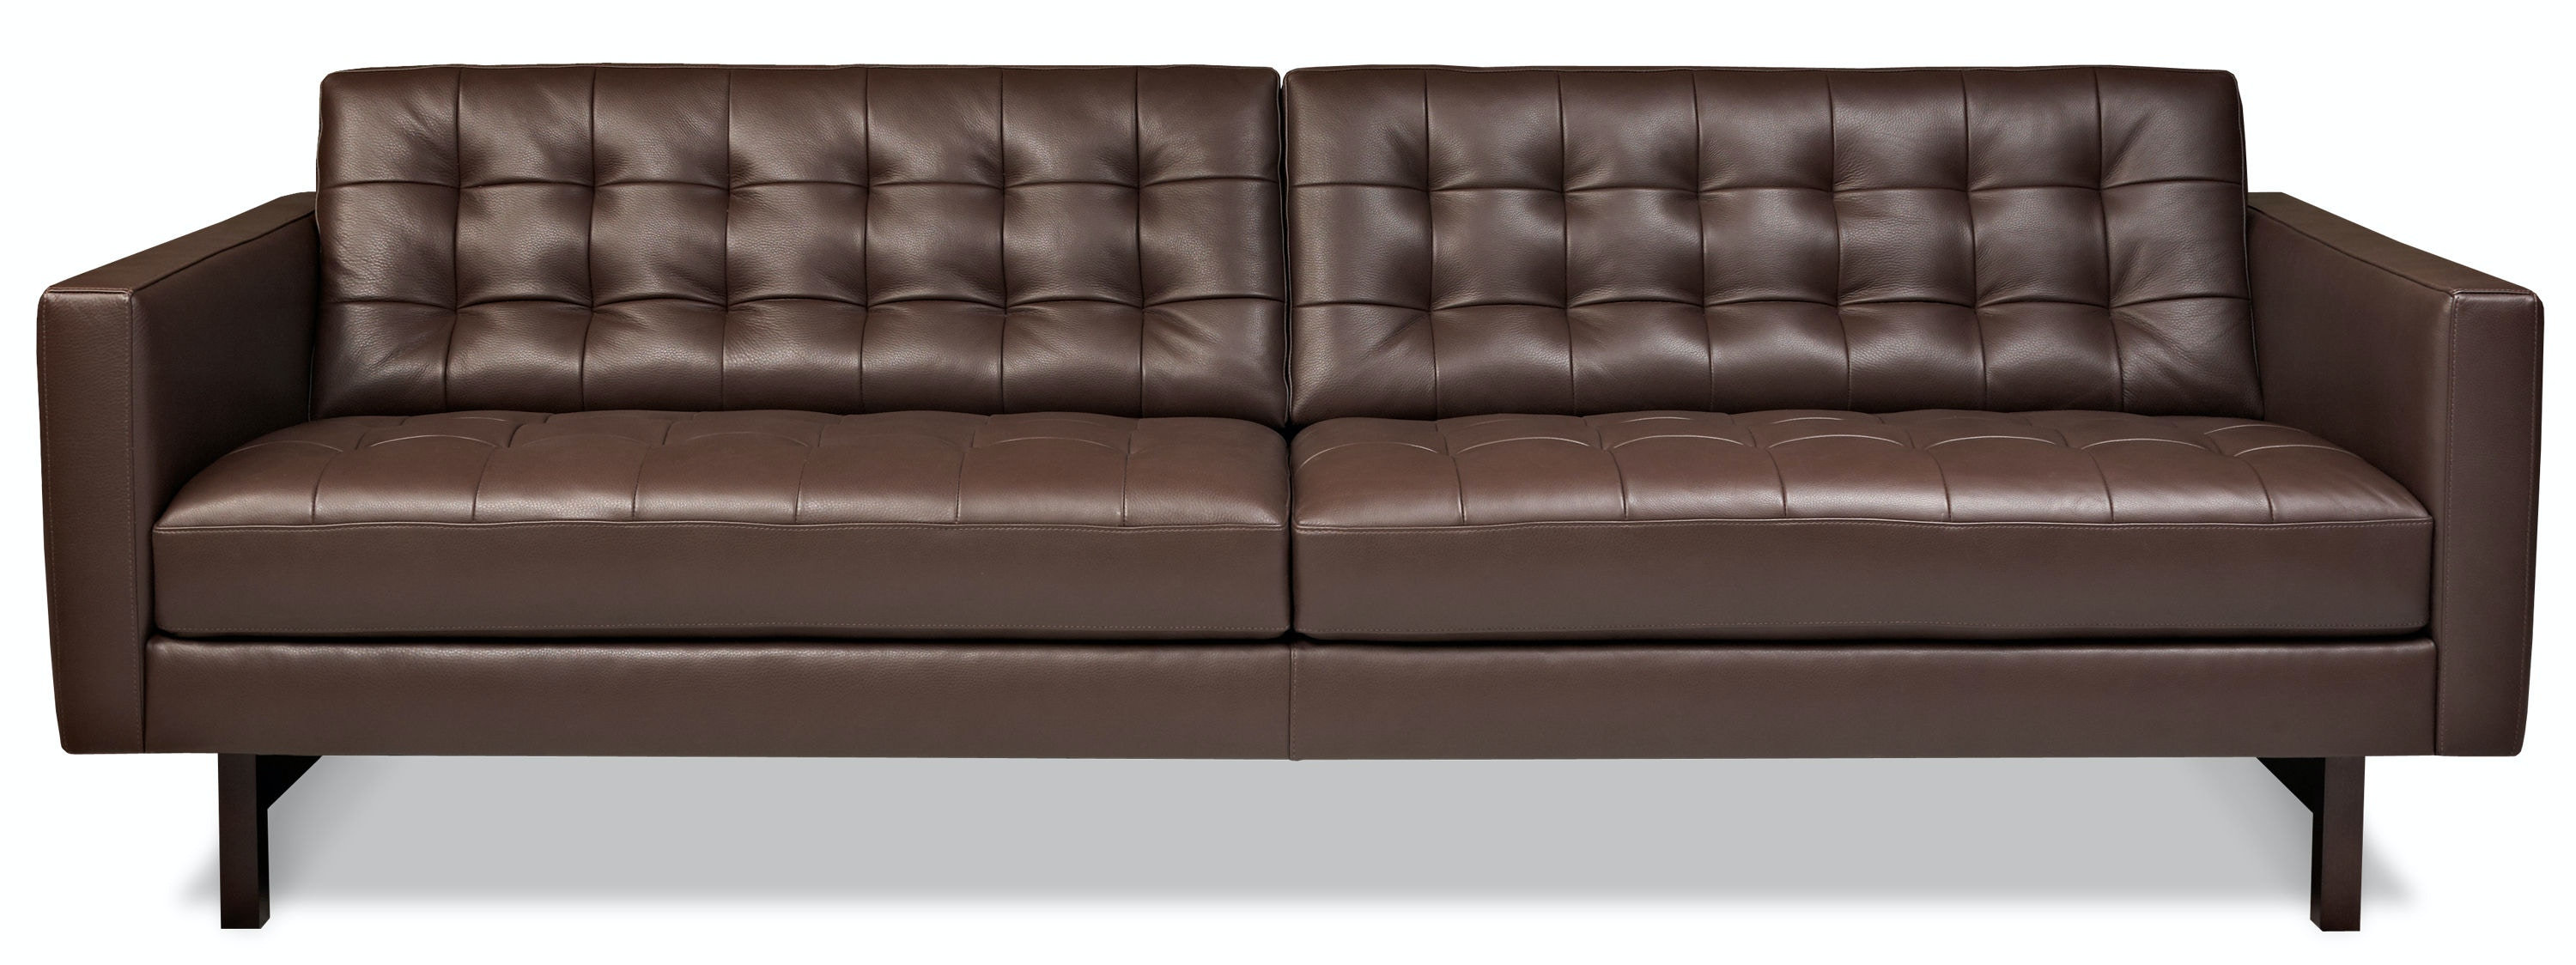 Great American Leather Two Cushion Sofa PKR SM2 ST